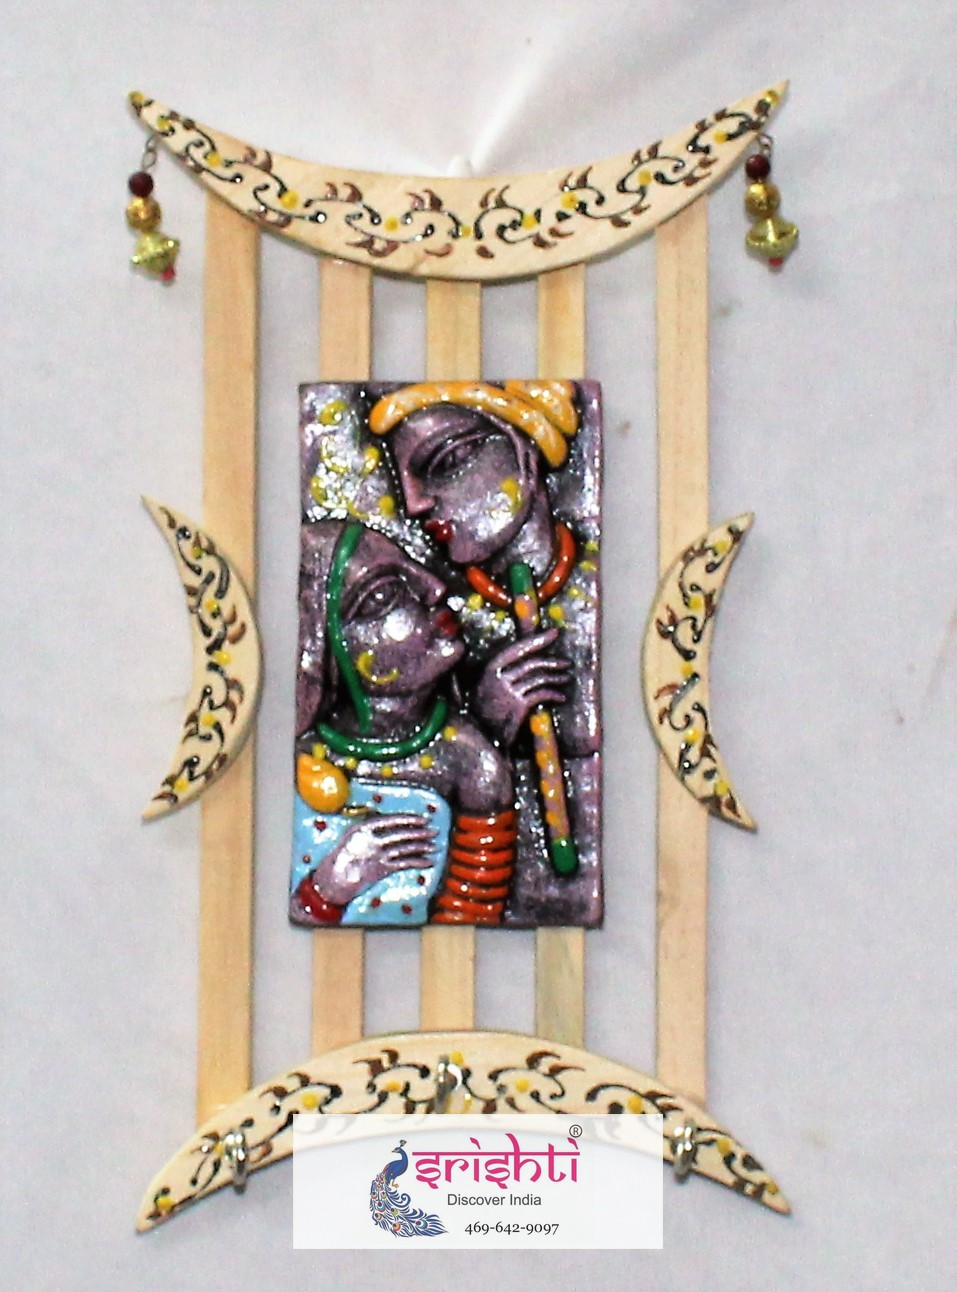 SMHD-Radhakrishna Key Holder